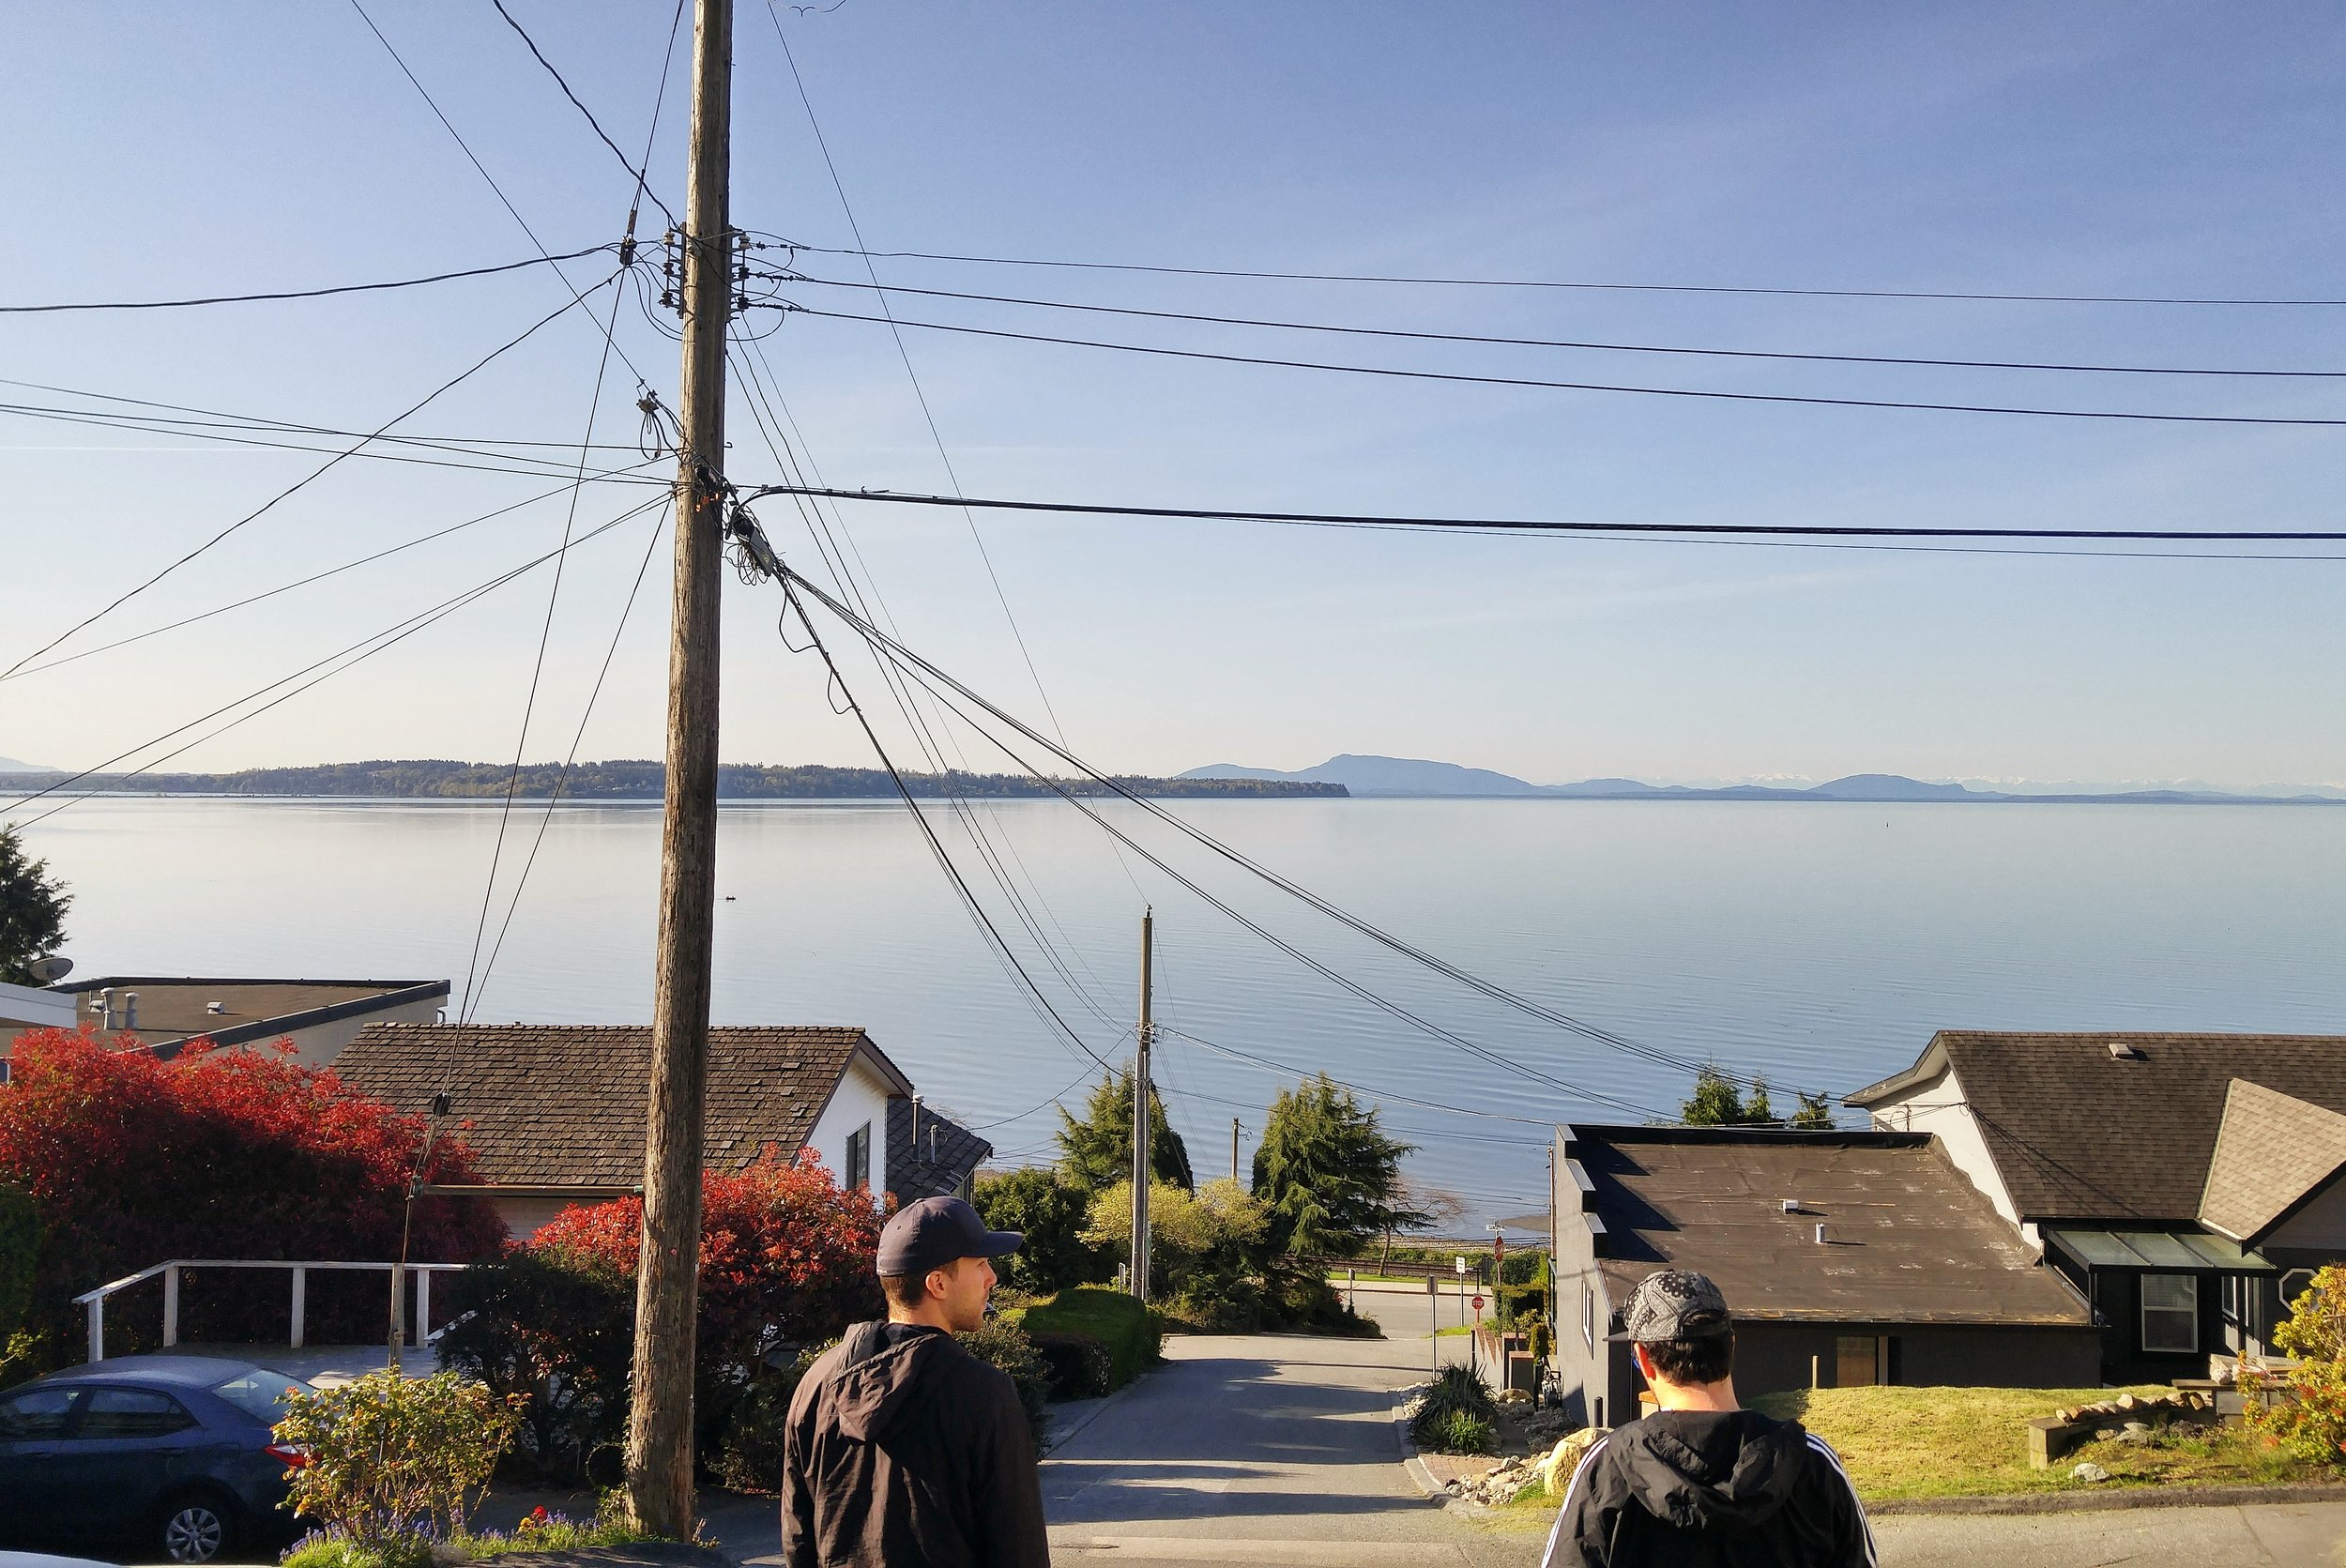 White Rock, BC is not on the Island, but right on the coast of the Mainland. It's a beautiful oceanfront town built right onto a cliff. The walks are steep and difficult, but the view makes it so worth it.